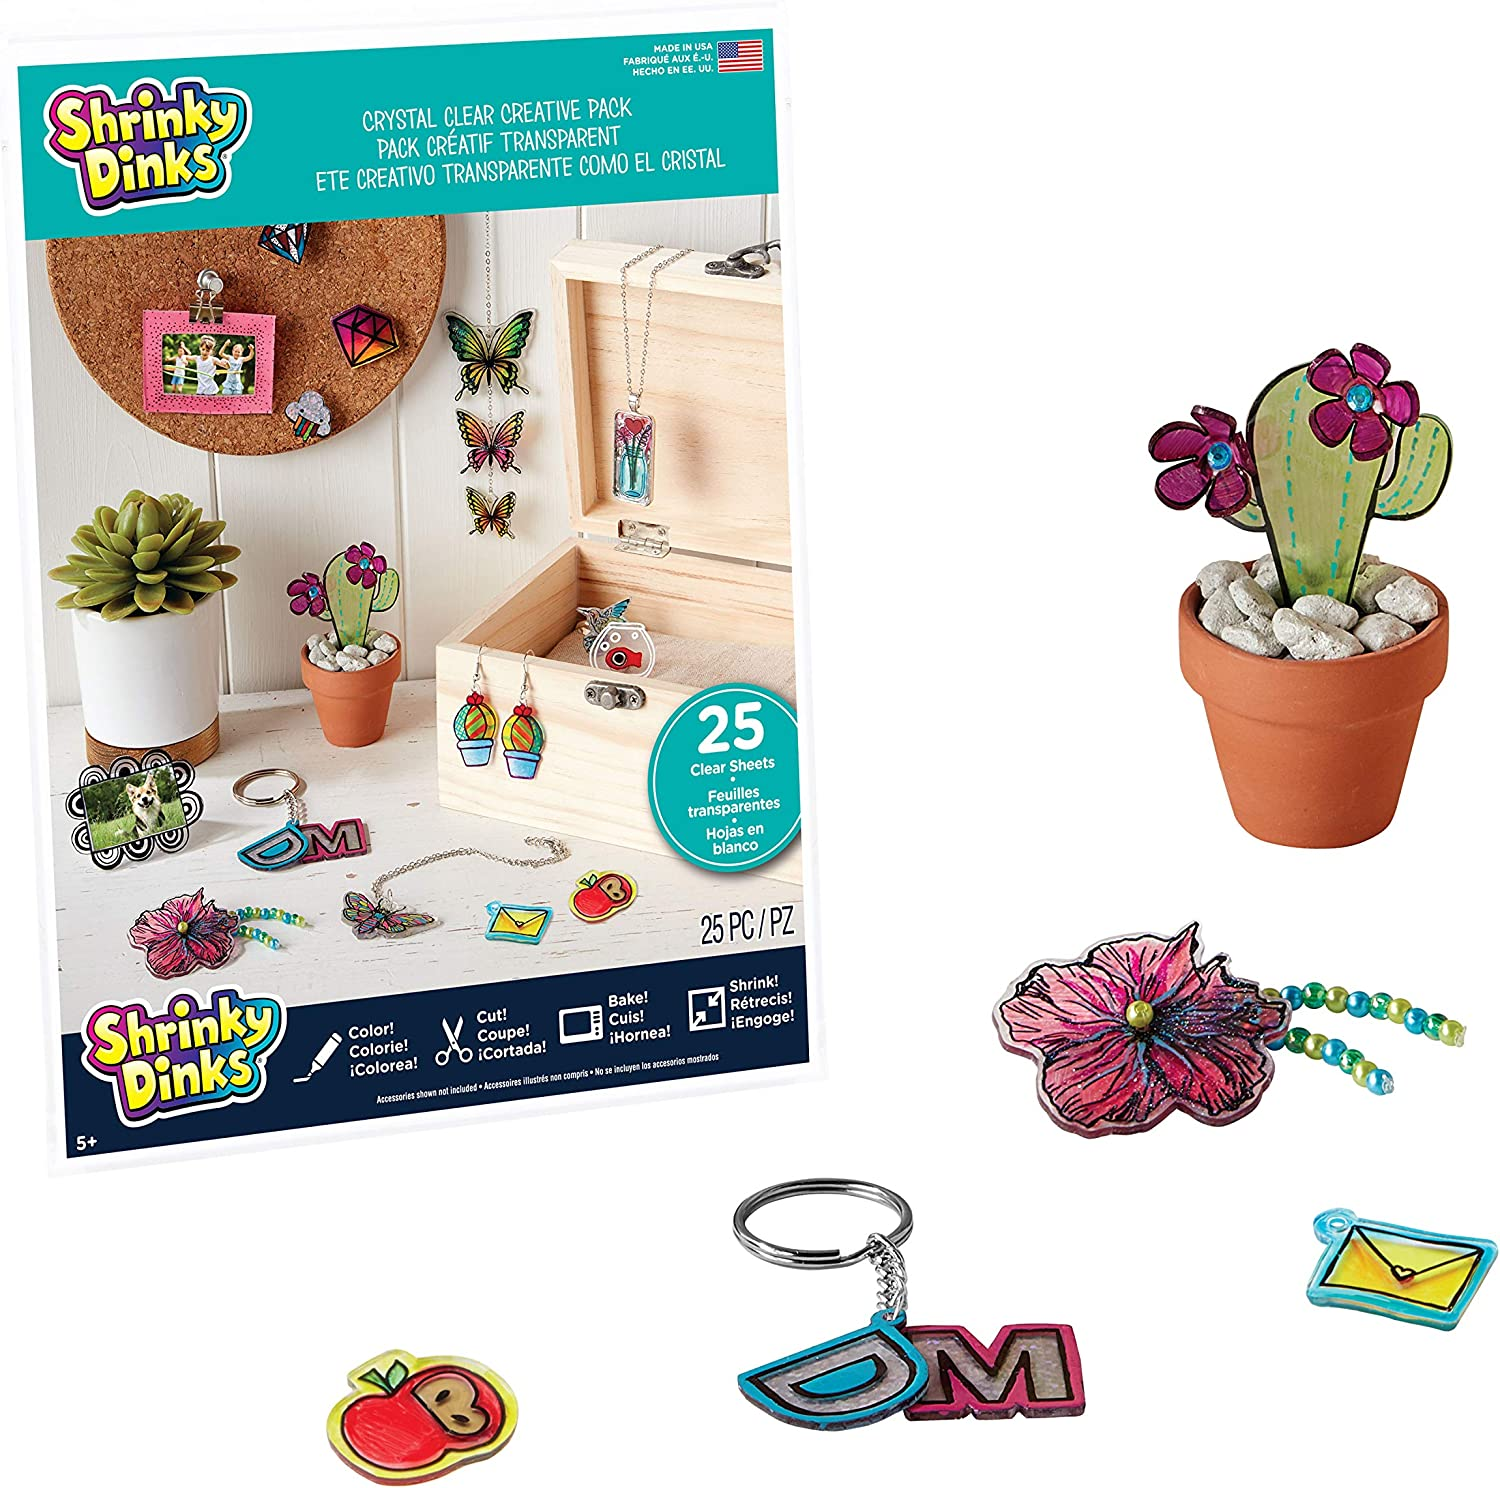 Shrinky Dinks Creative Pack, 25 Sheets Crystal Clear, Kids Art and Craft Activity Set